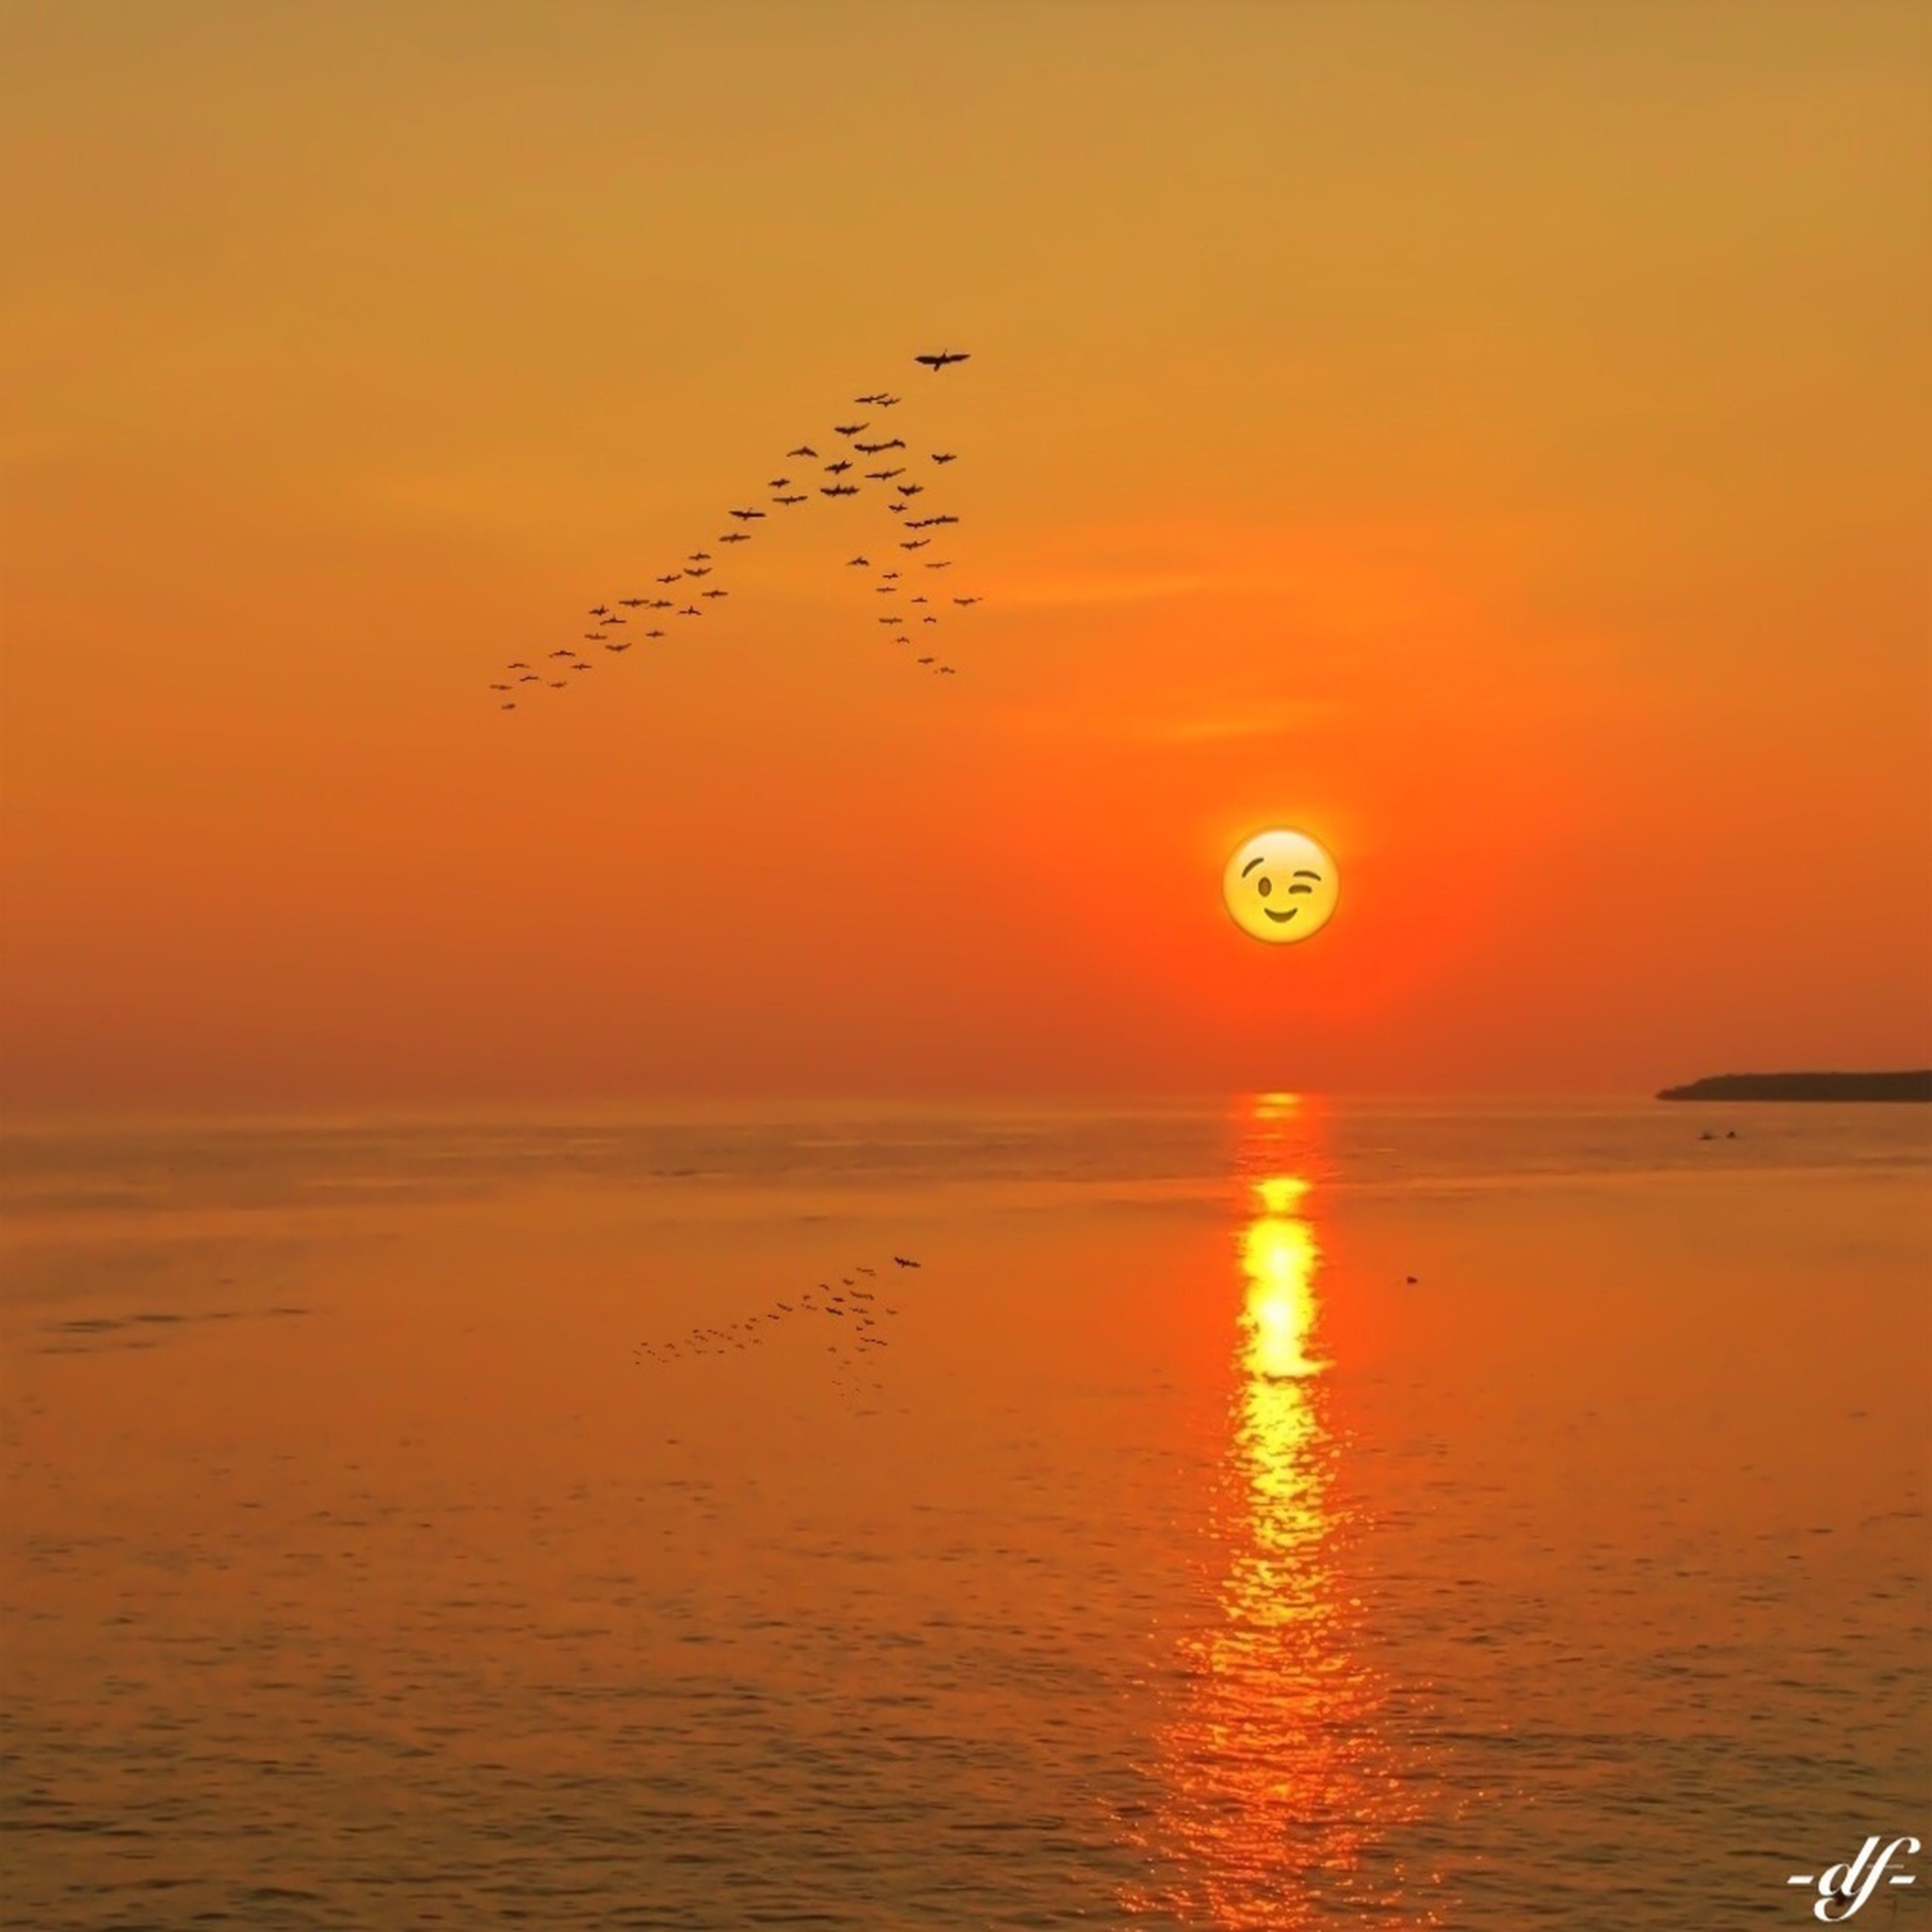 sunset, water, orange color, sea, scenics, horizon over water, sun, beauty in nature, tranquil scene, waterfront, tranquility, bird, idyllic, nature, reflection, sky, flying, rippled, animal themes, silhouette